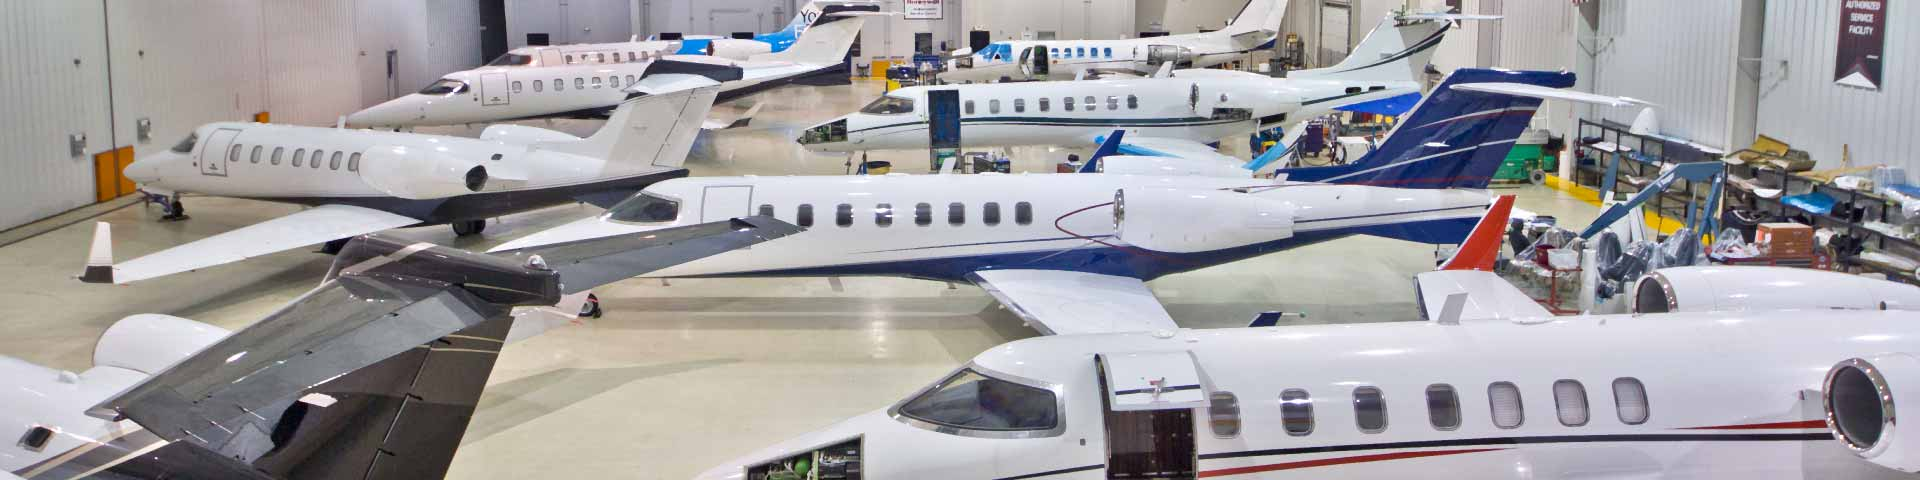 Flightar Maintenace Learjet Experts